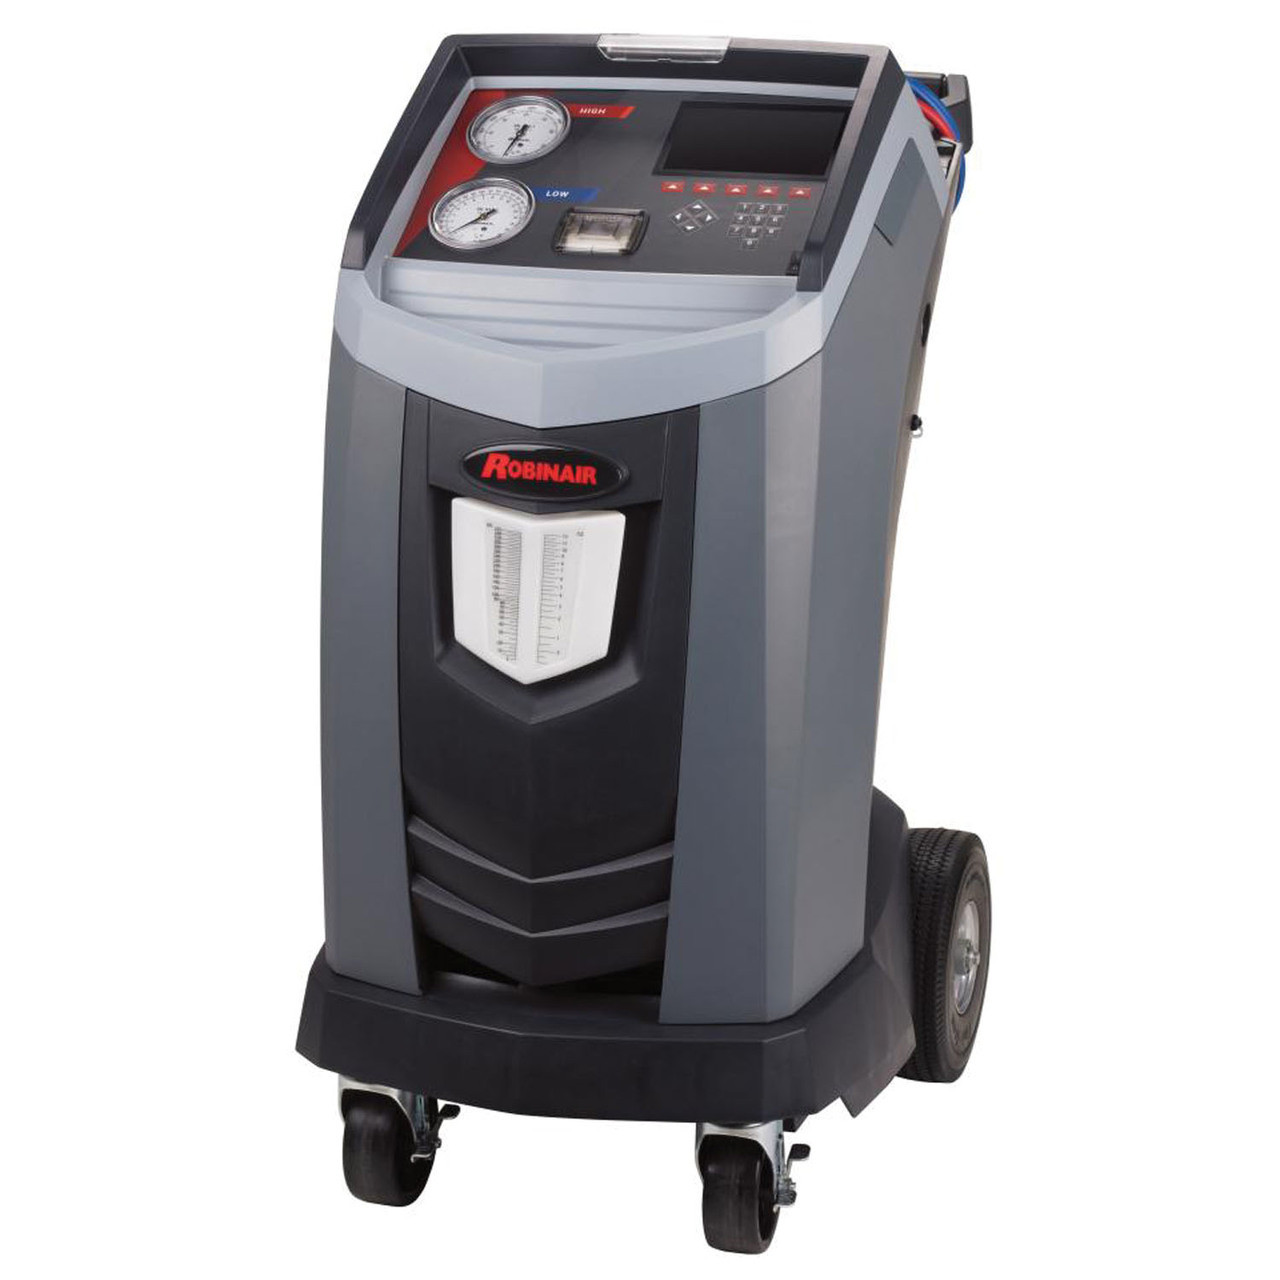 Robinair Premier R-134A Refrigerant Recovery, Recycling, and Recharging Machine part #:ROB-34988NI